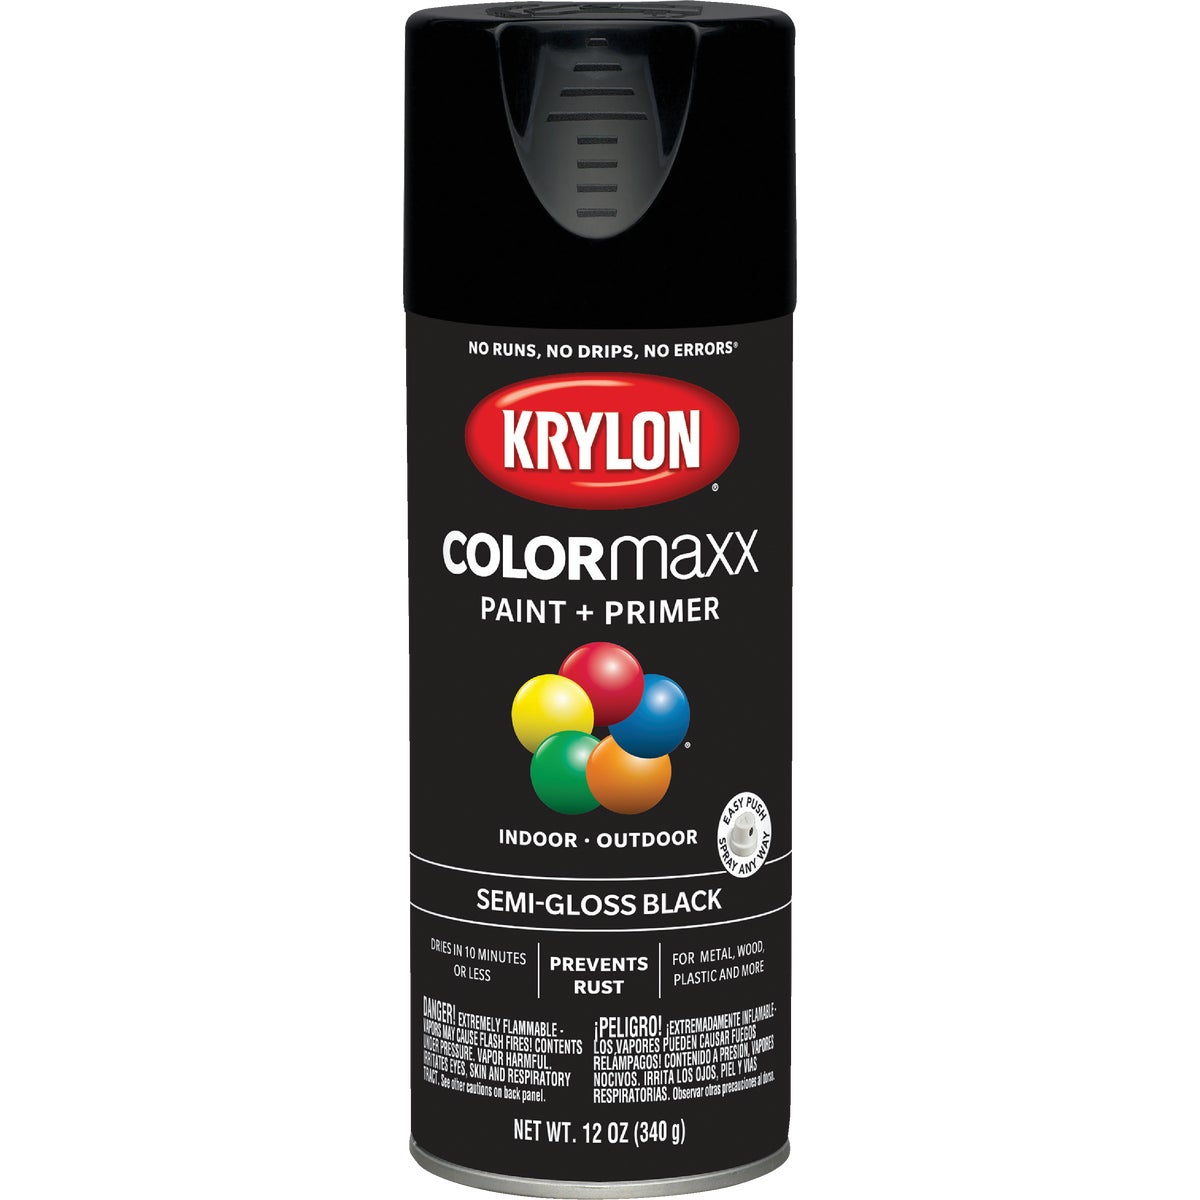 S/G BLACK SPRAY PAINT - 51603 by Krylon/consumer Div